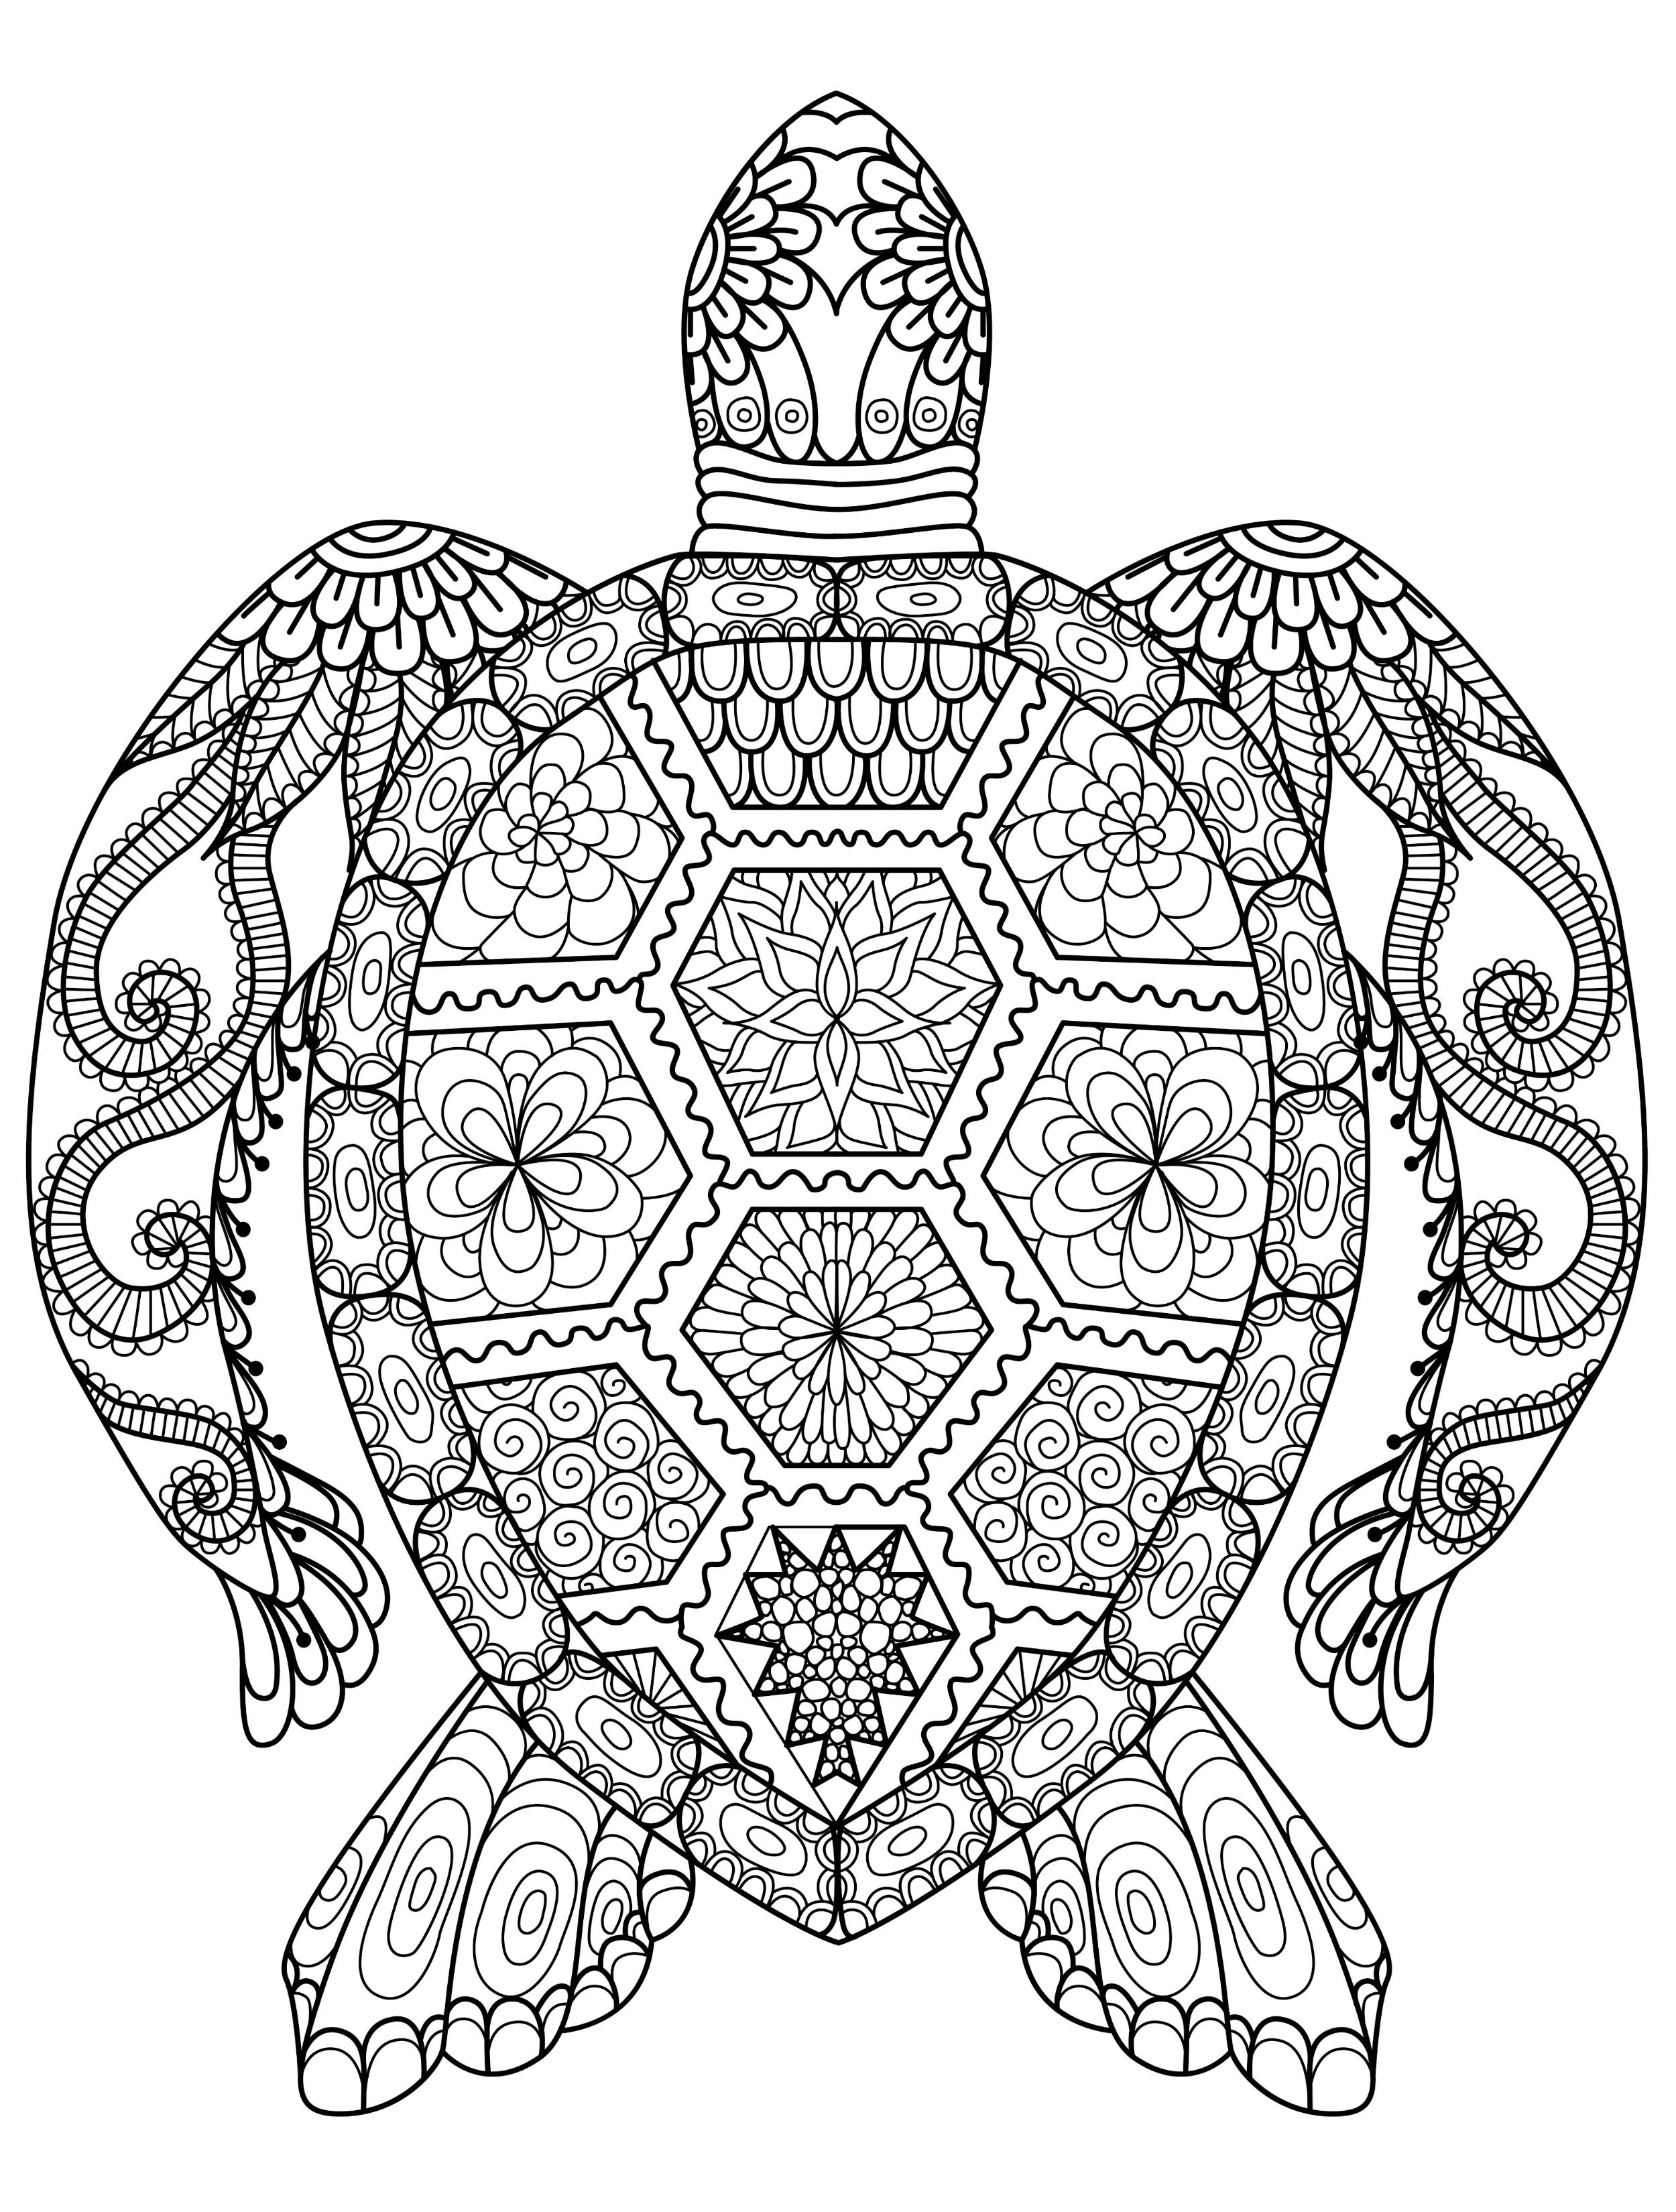 Turtle Mandala Coloring Pages Printable Collection Download Of Modern Intricate Mandala Coloring Pages Coloring for Good Mandala to Print